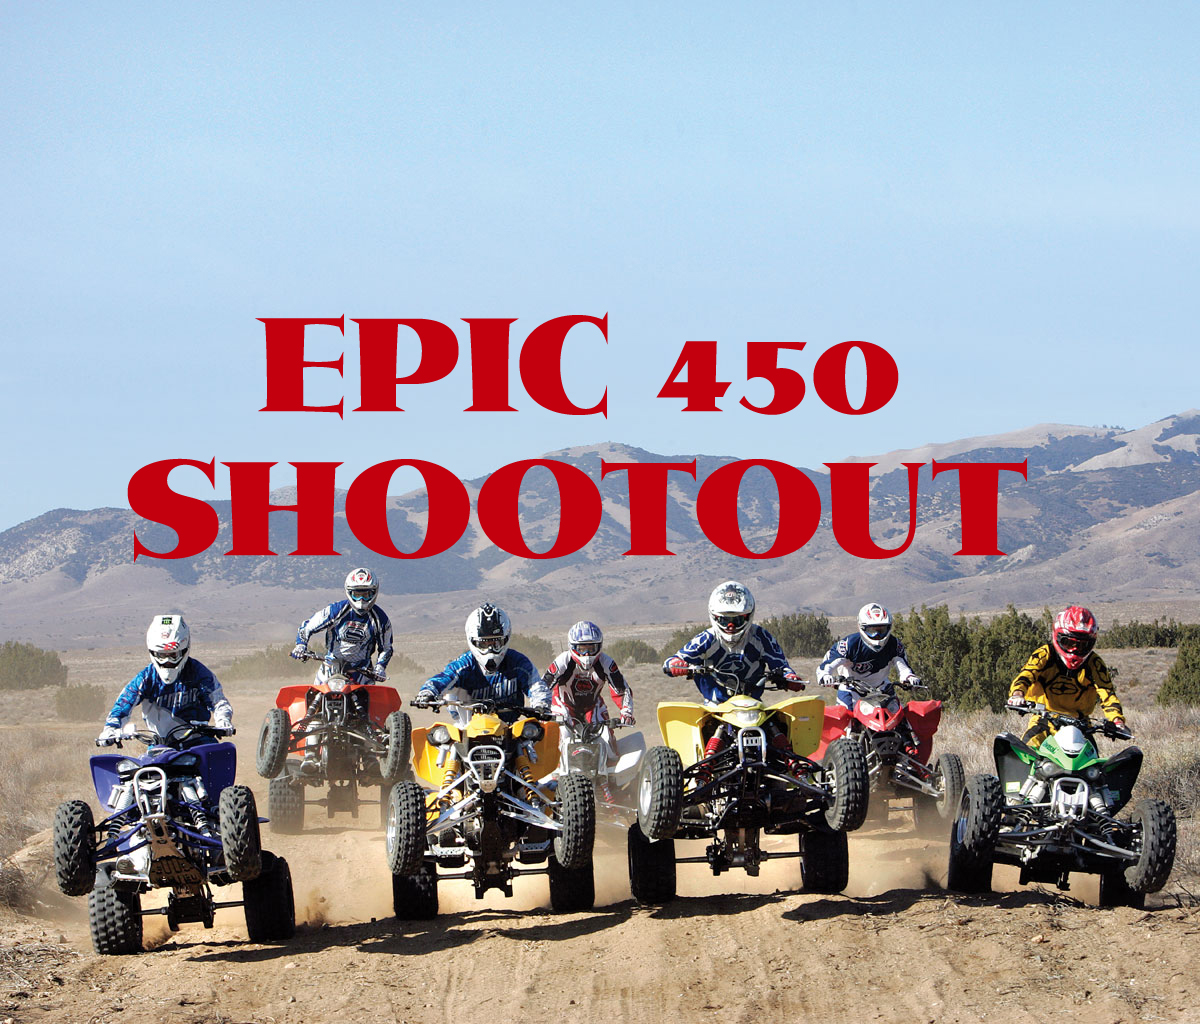 The MOST EPIC 450 shootout! 7 sport quads: BLAST FROM THE PAST